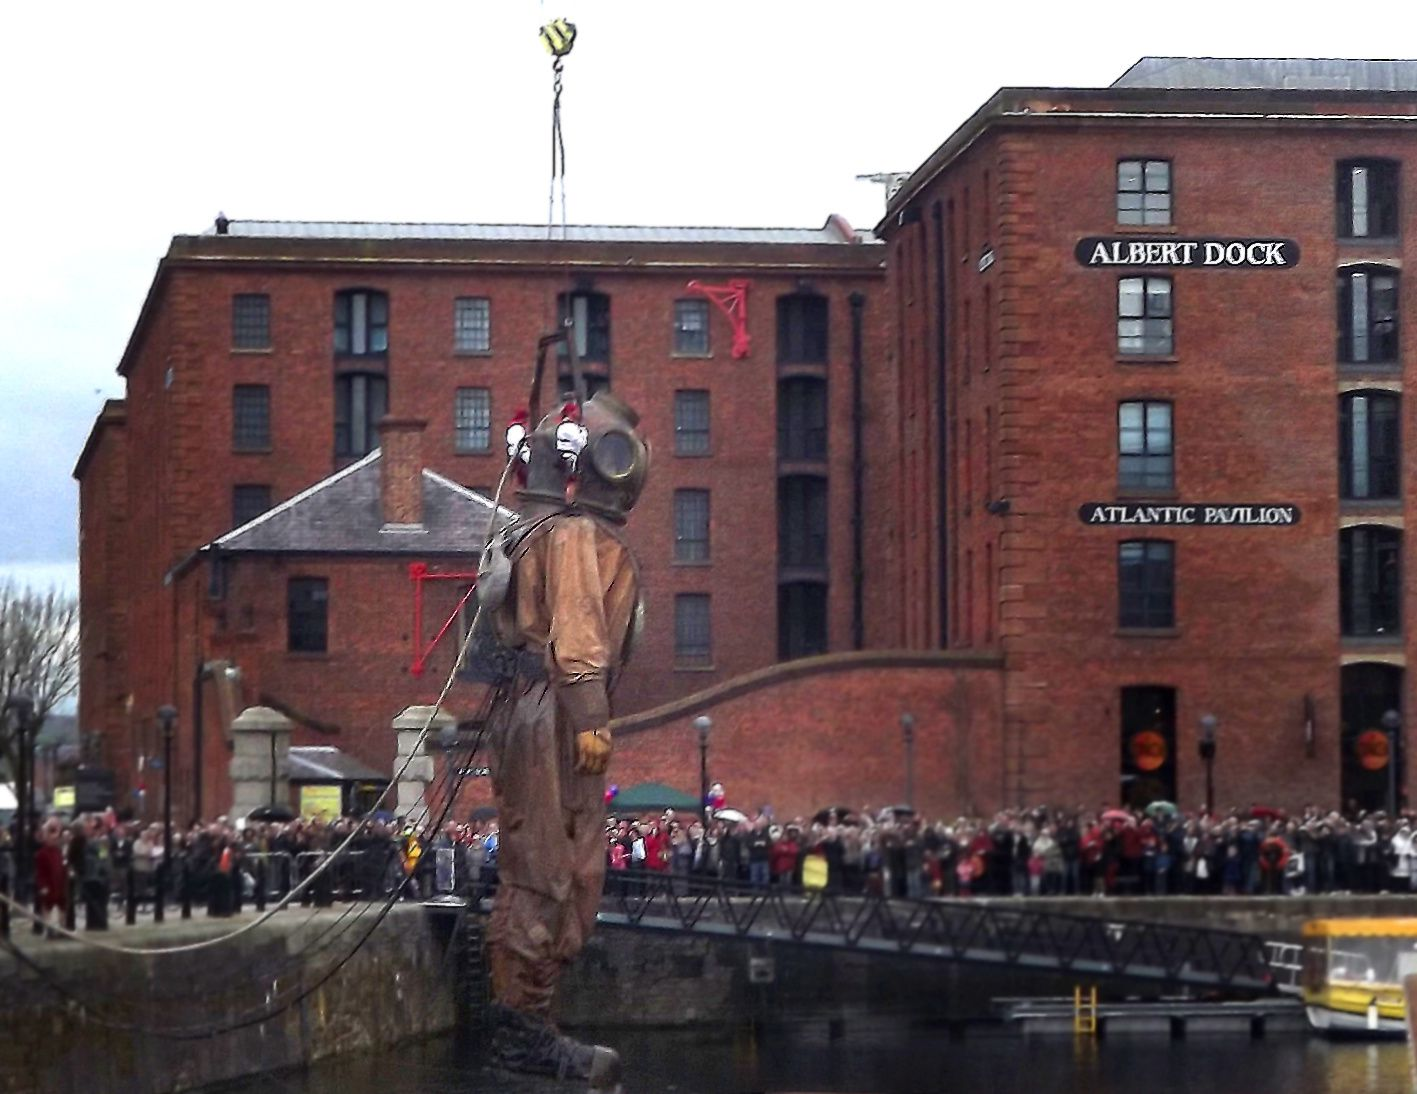 ROYAL DE LUXE LIVERPOOL SEA ODYSSEY 2012